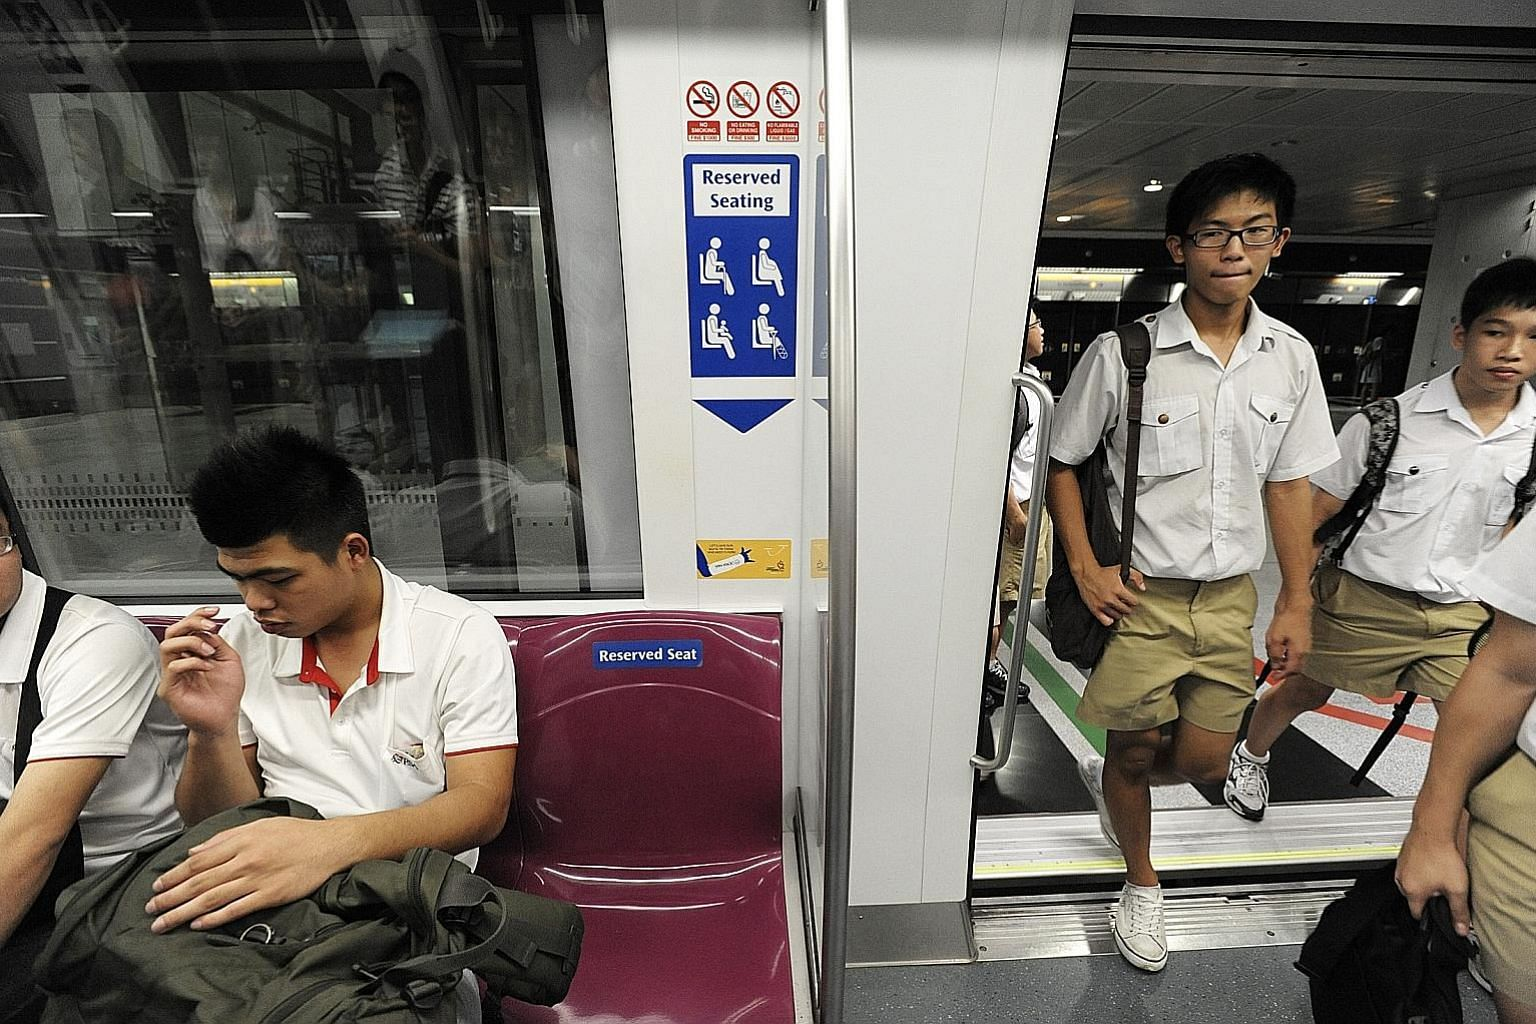 Norms such as queueing up to enter the MRT train and giving up one's seat to a person in need are now clearly established and people are more likely to abide by them, says SMU sociologist Paulin Straughan.